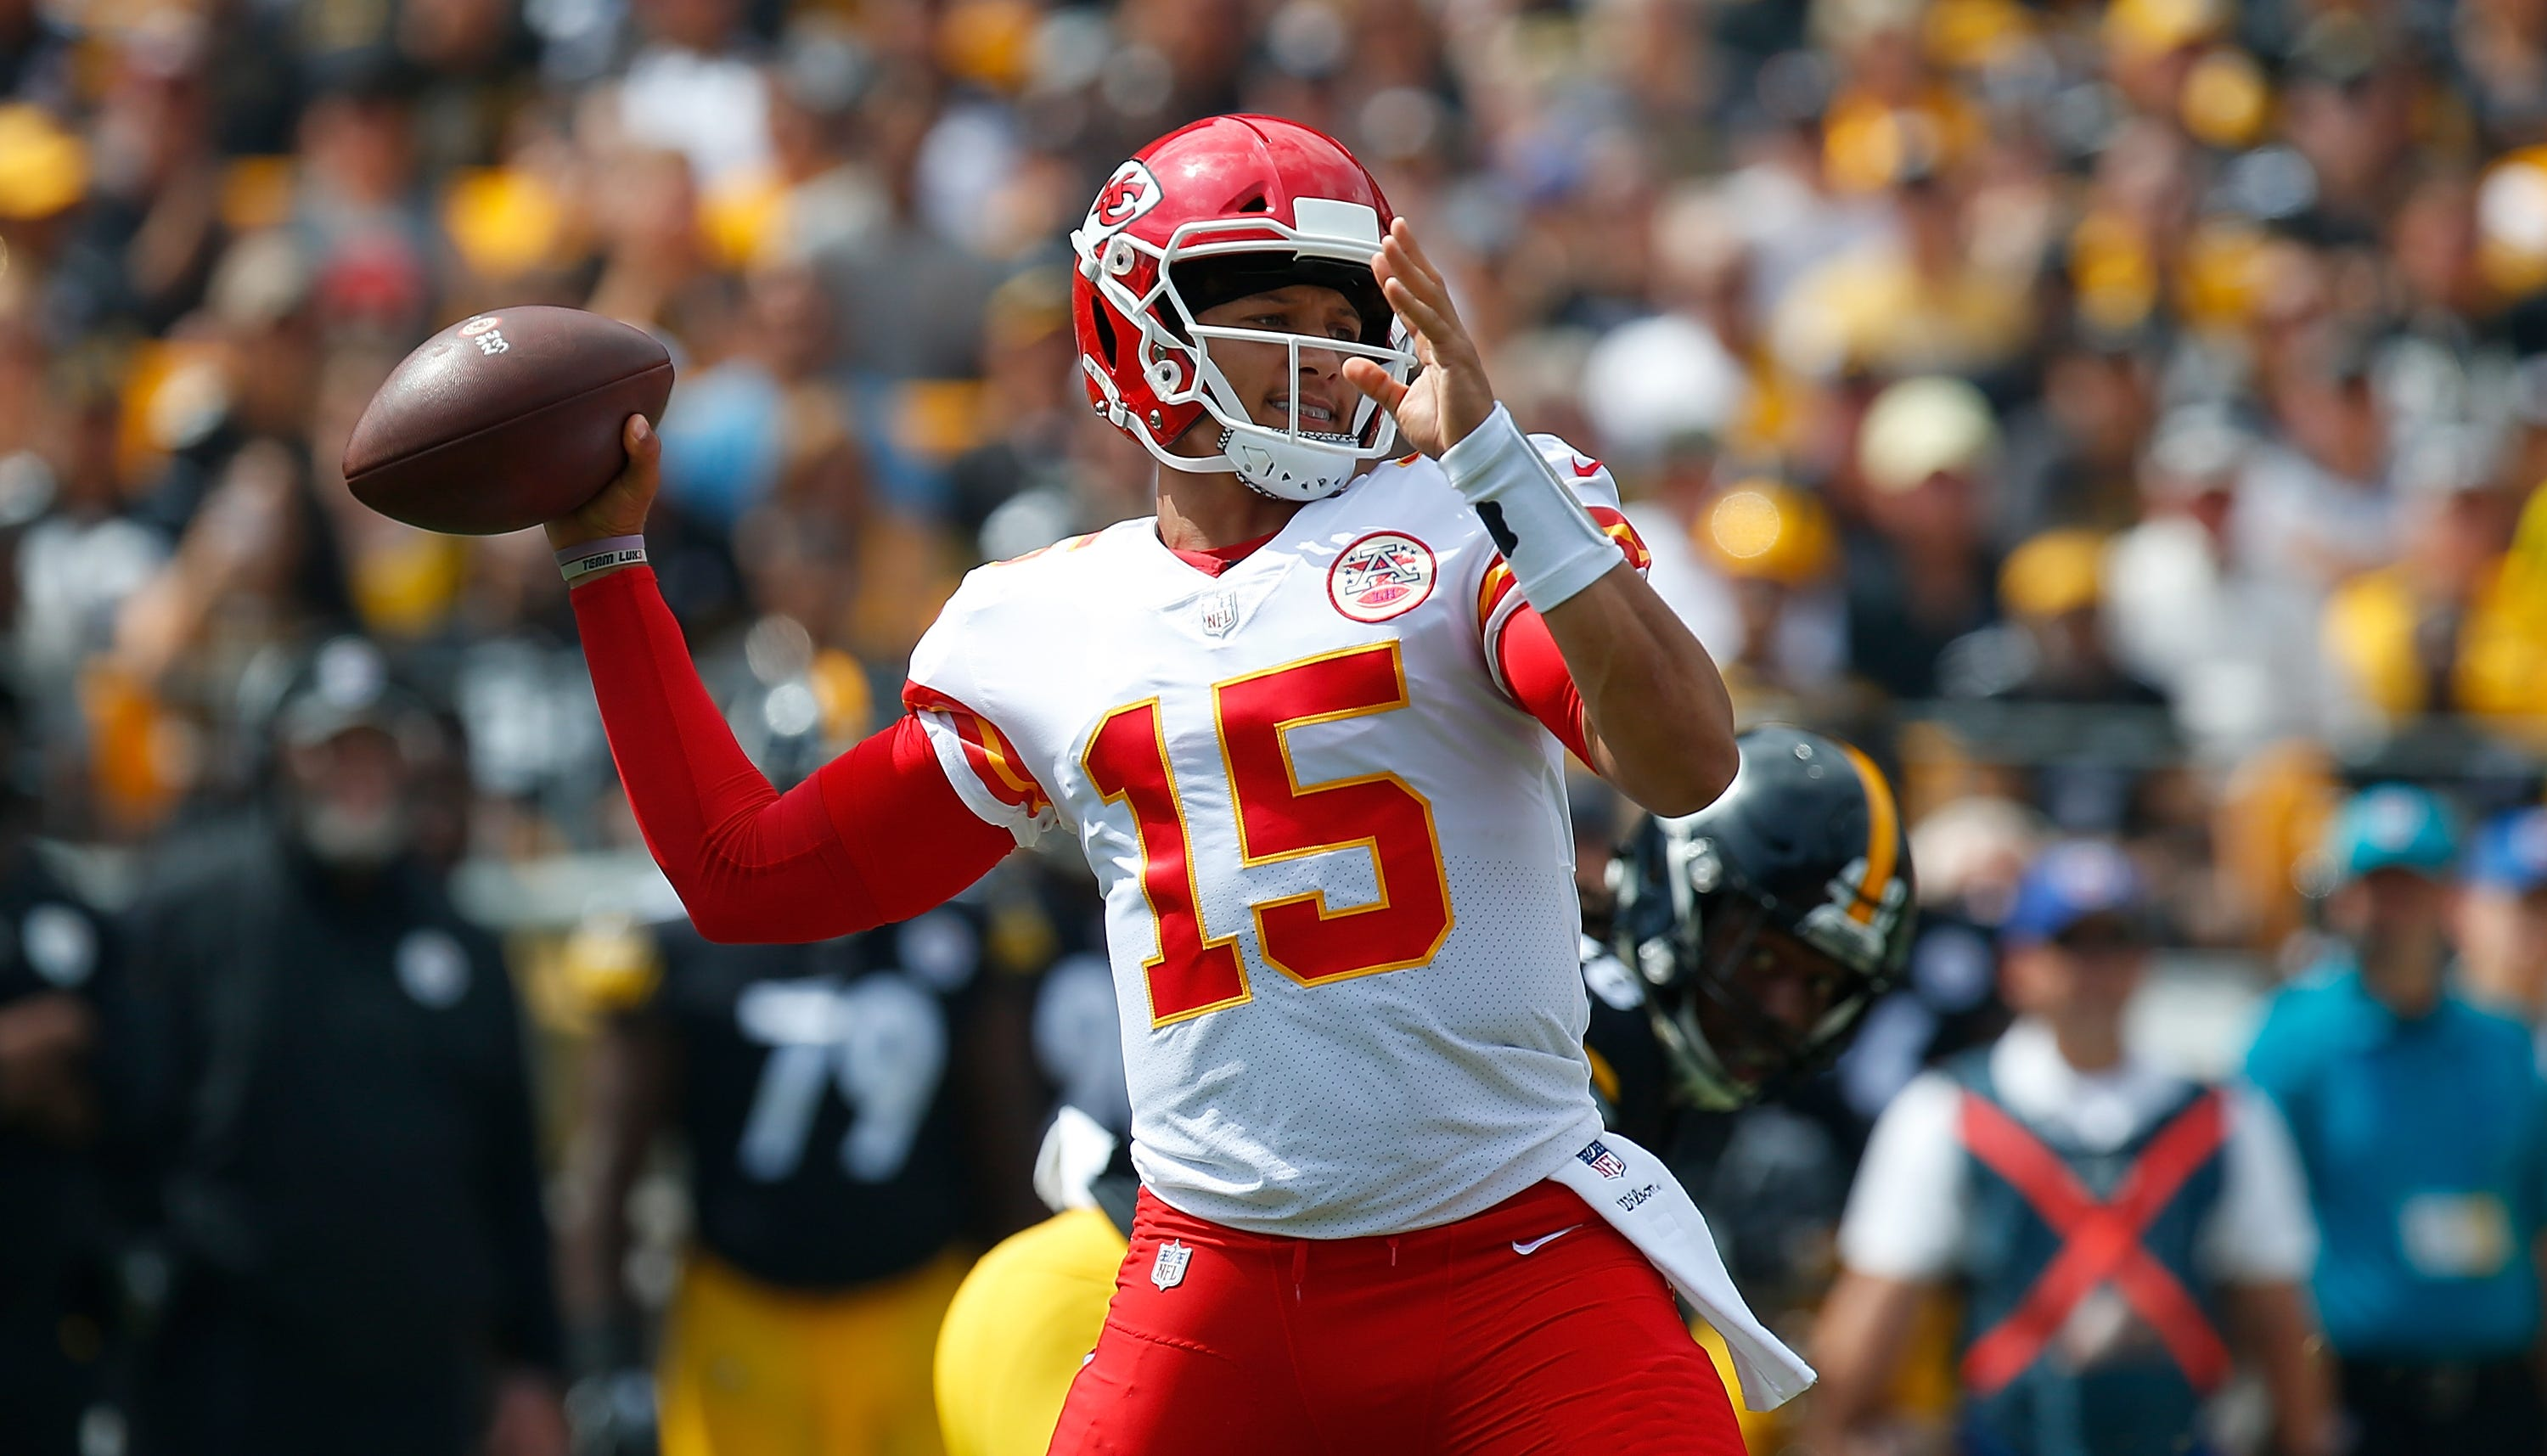 Patrick Mahomes Nfl S Hottest Qb Grew Up In Mlb Clubhouses